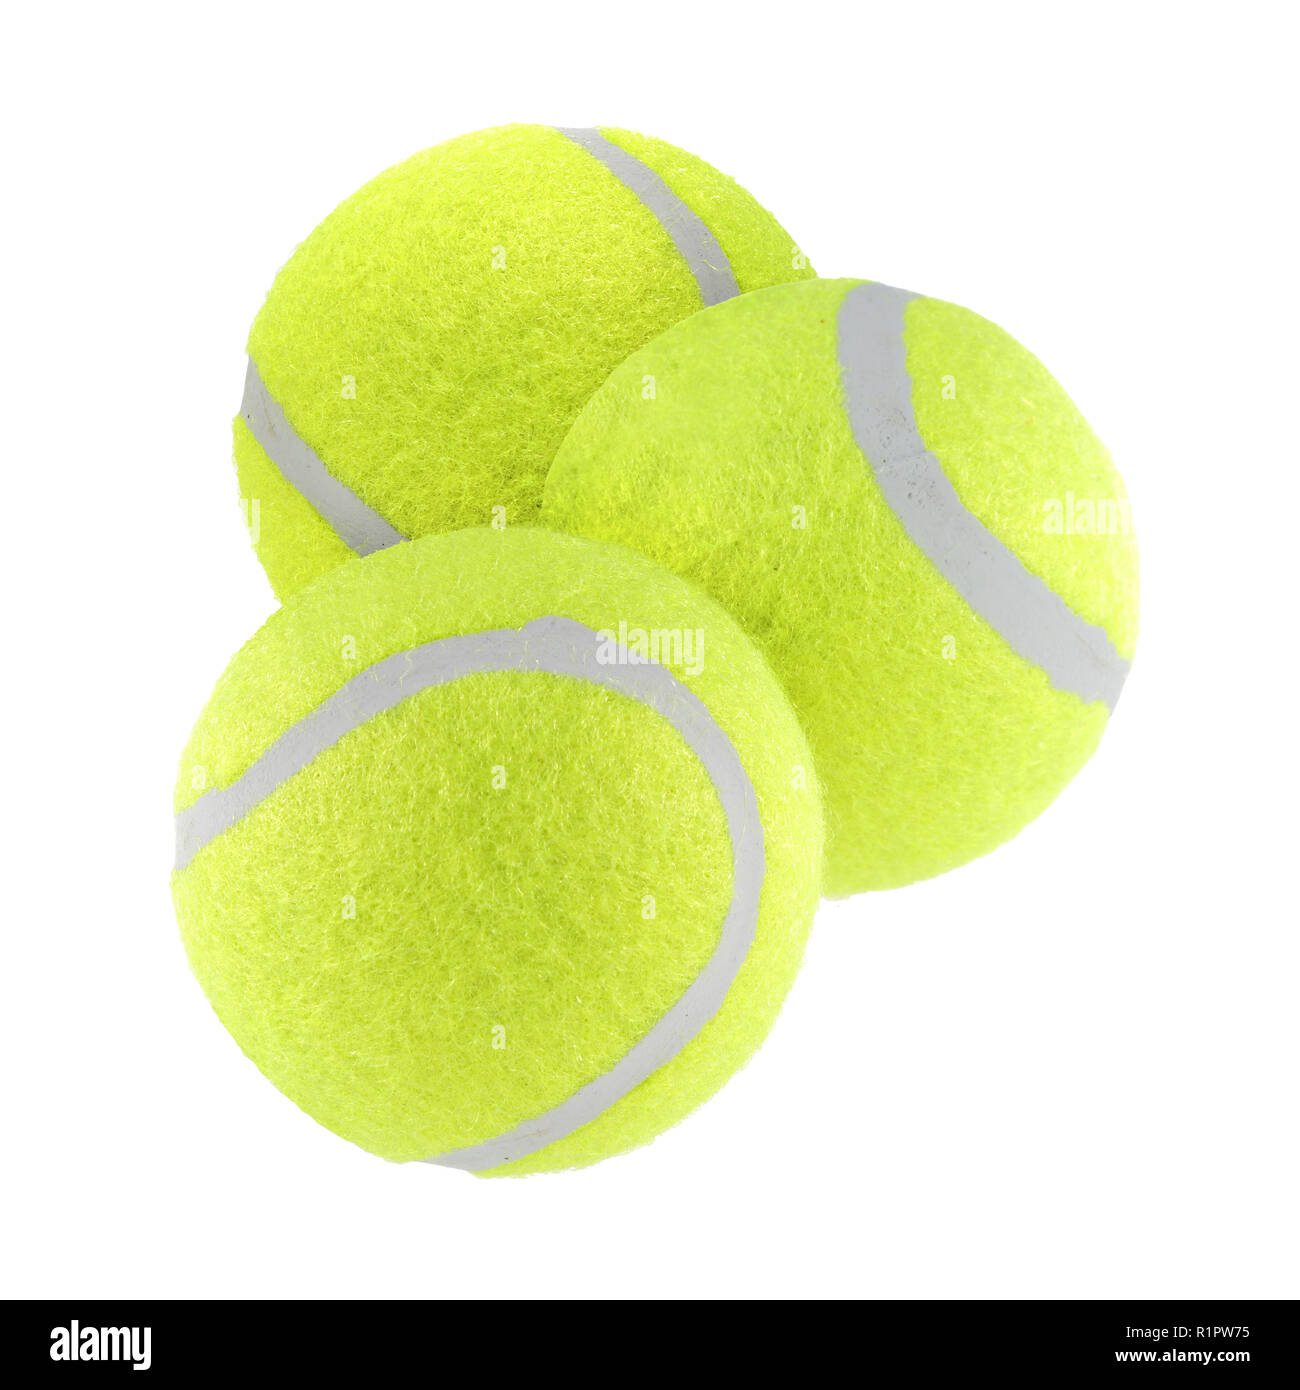 3 balles de tennis isolé sur fond blanc avec clipping path Photo Stock